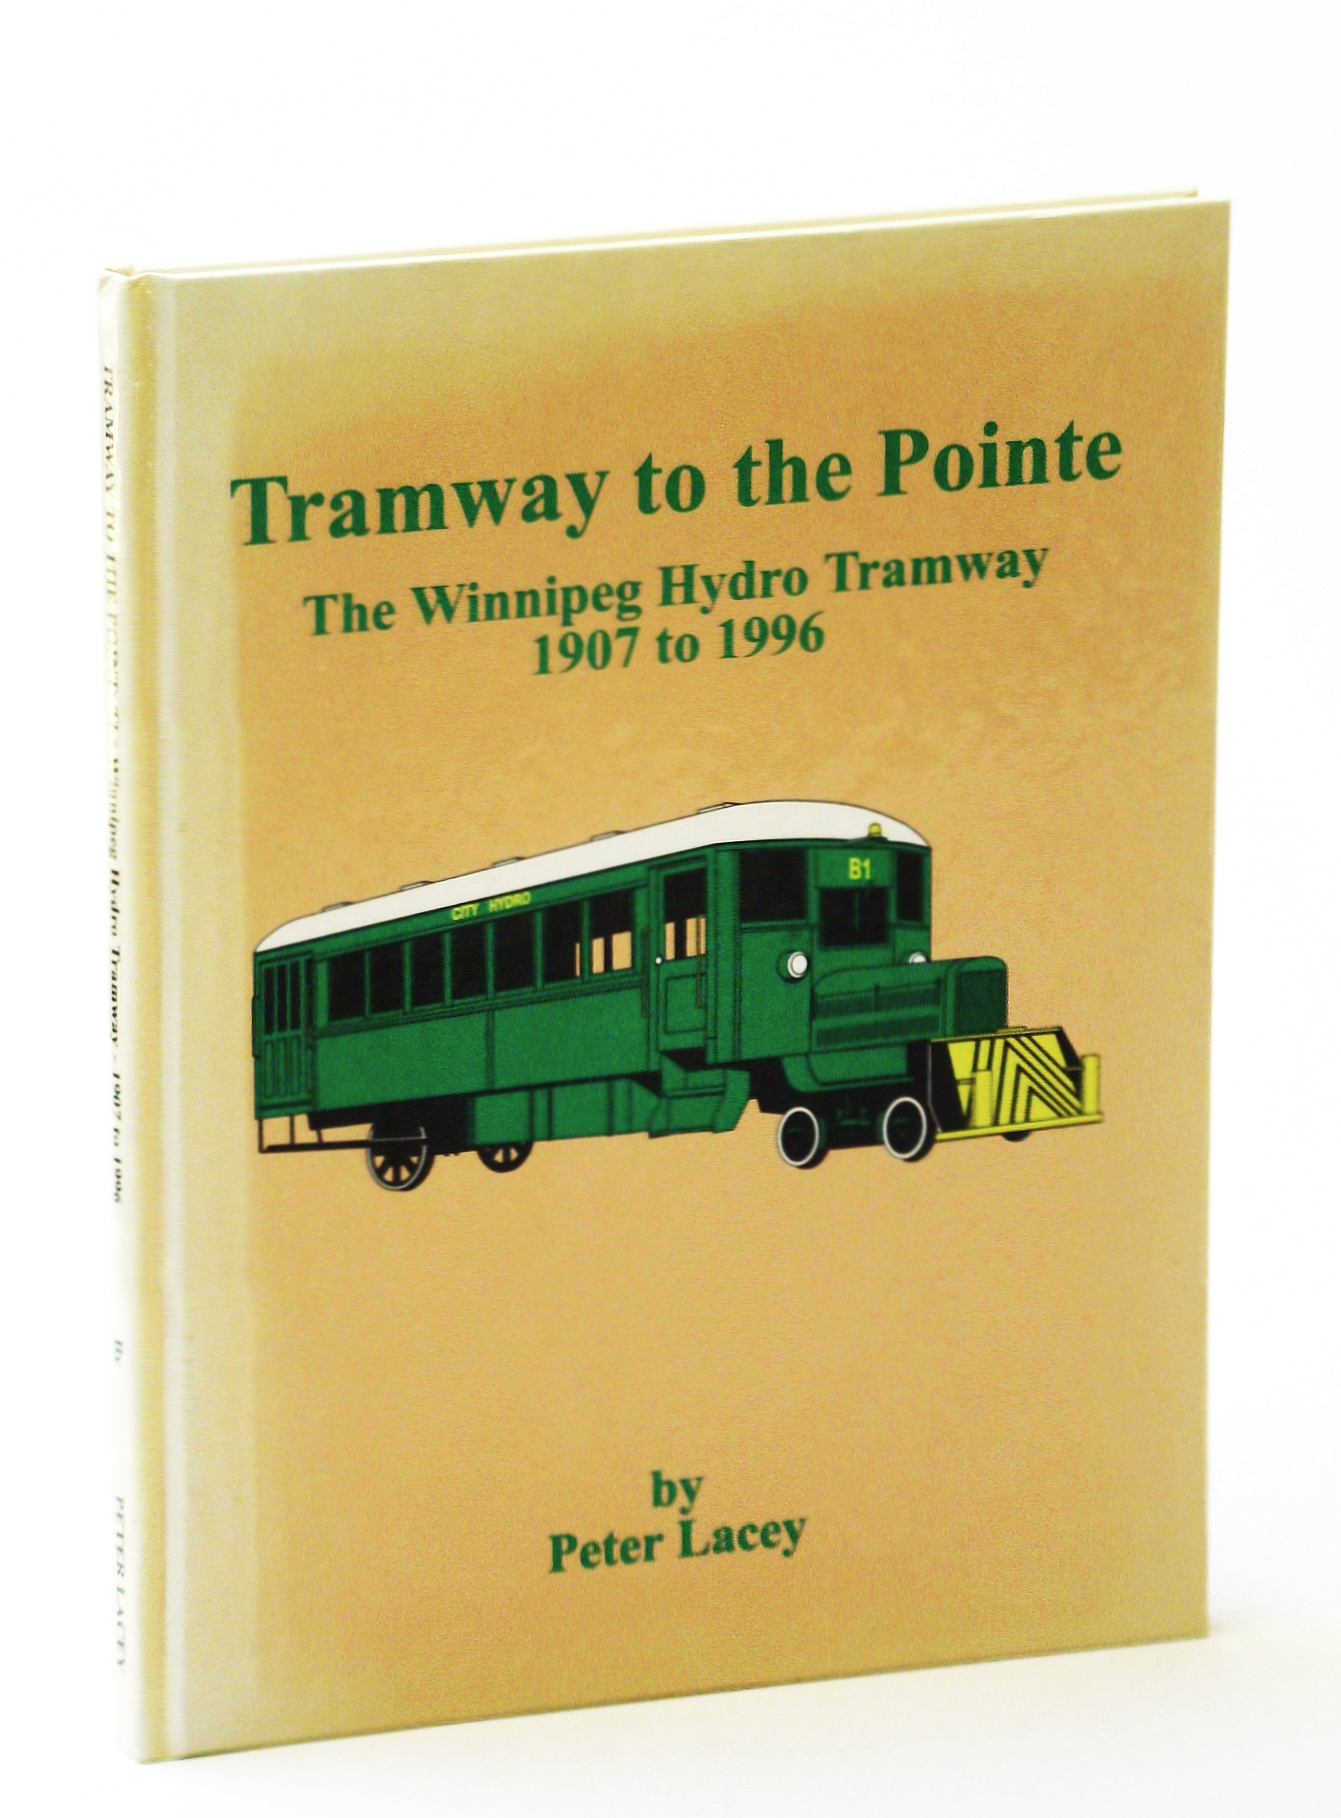 Image for Tramway to the Point: The Winnipeg Hydro Tramway 1907 to 1996 - Manitoba Industrial and Utility Railways, Volume 2